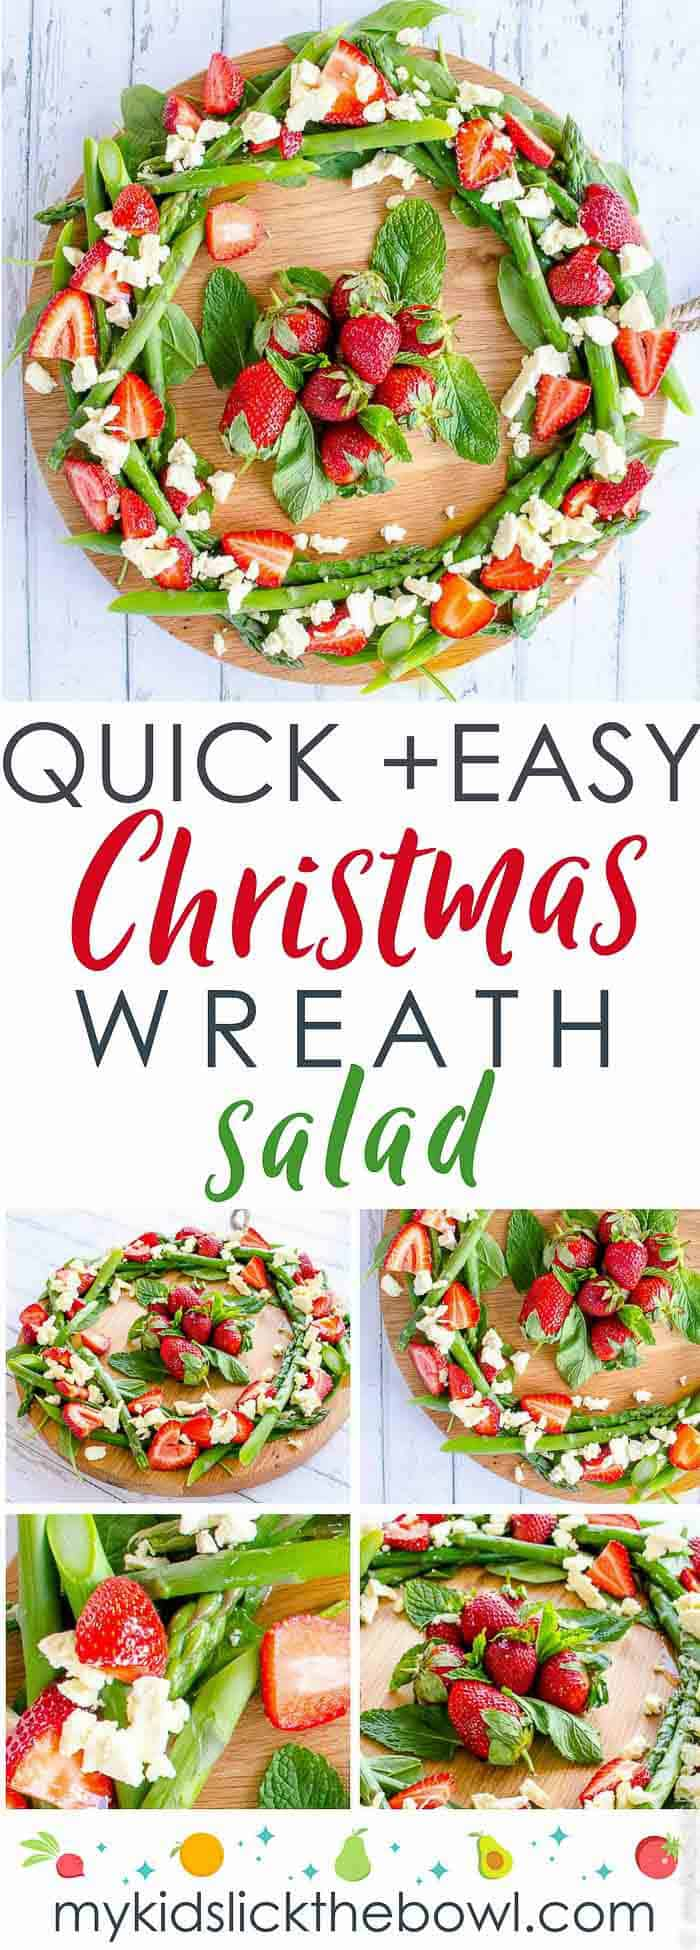 Quick Christmas Wreath Salad an easy healthy summer Christmas salad made with fruit and vegetables